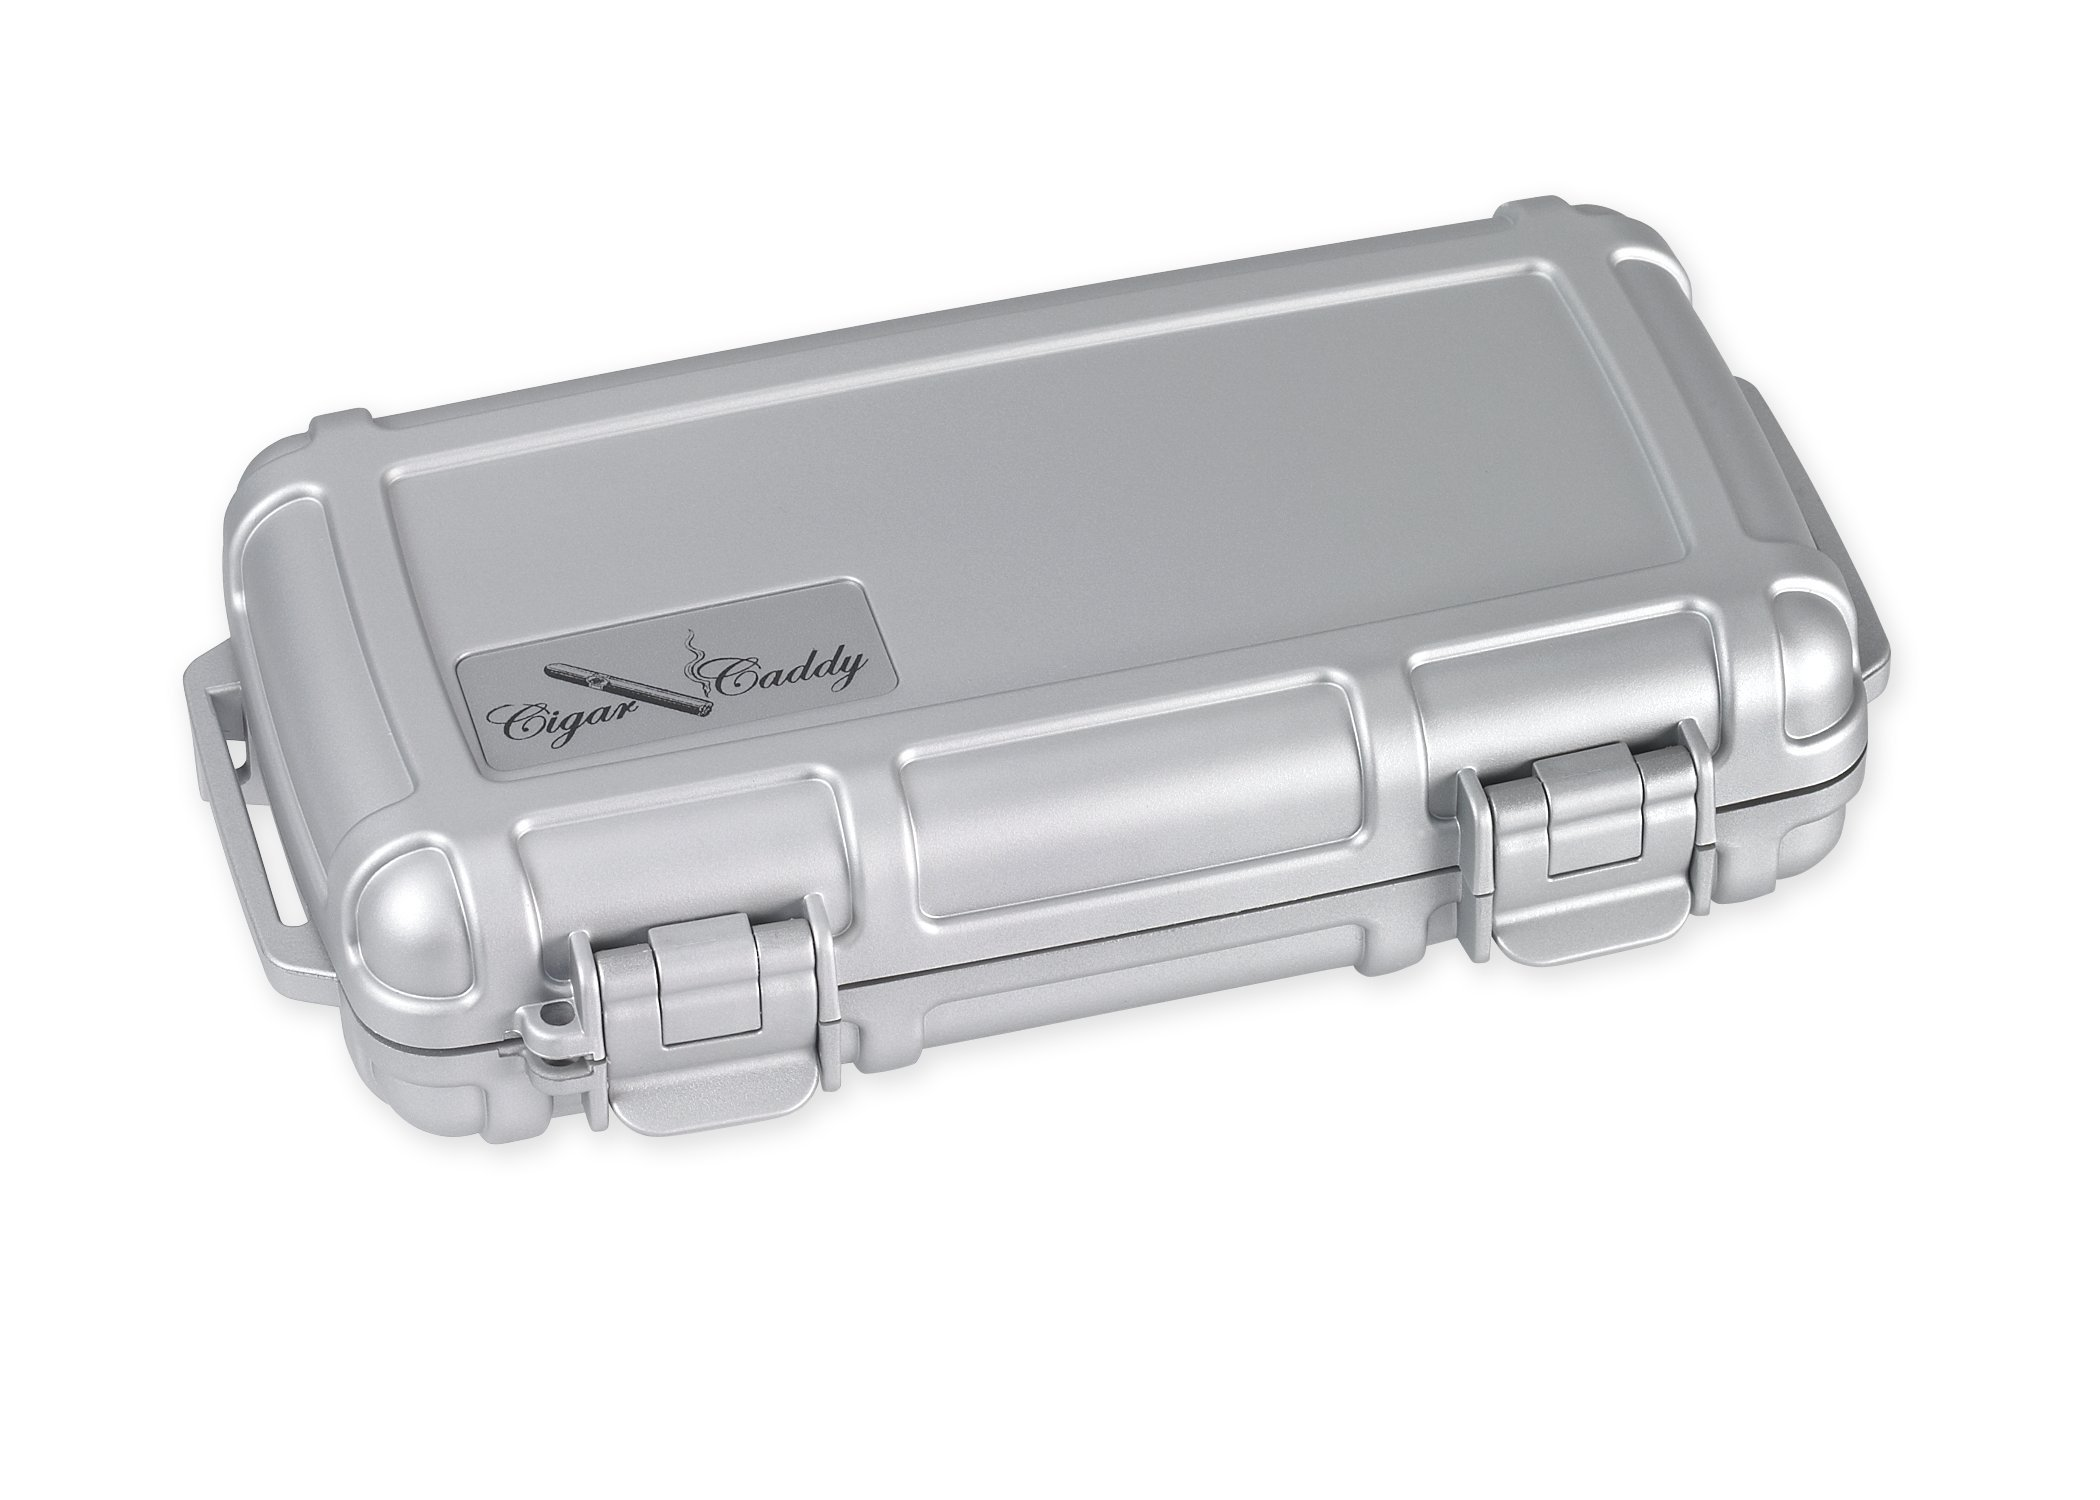 Cigar Caddy 3400-R Silver 5 Cigar Waterproof Travel Humidor, Silver Rubberized Exterior